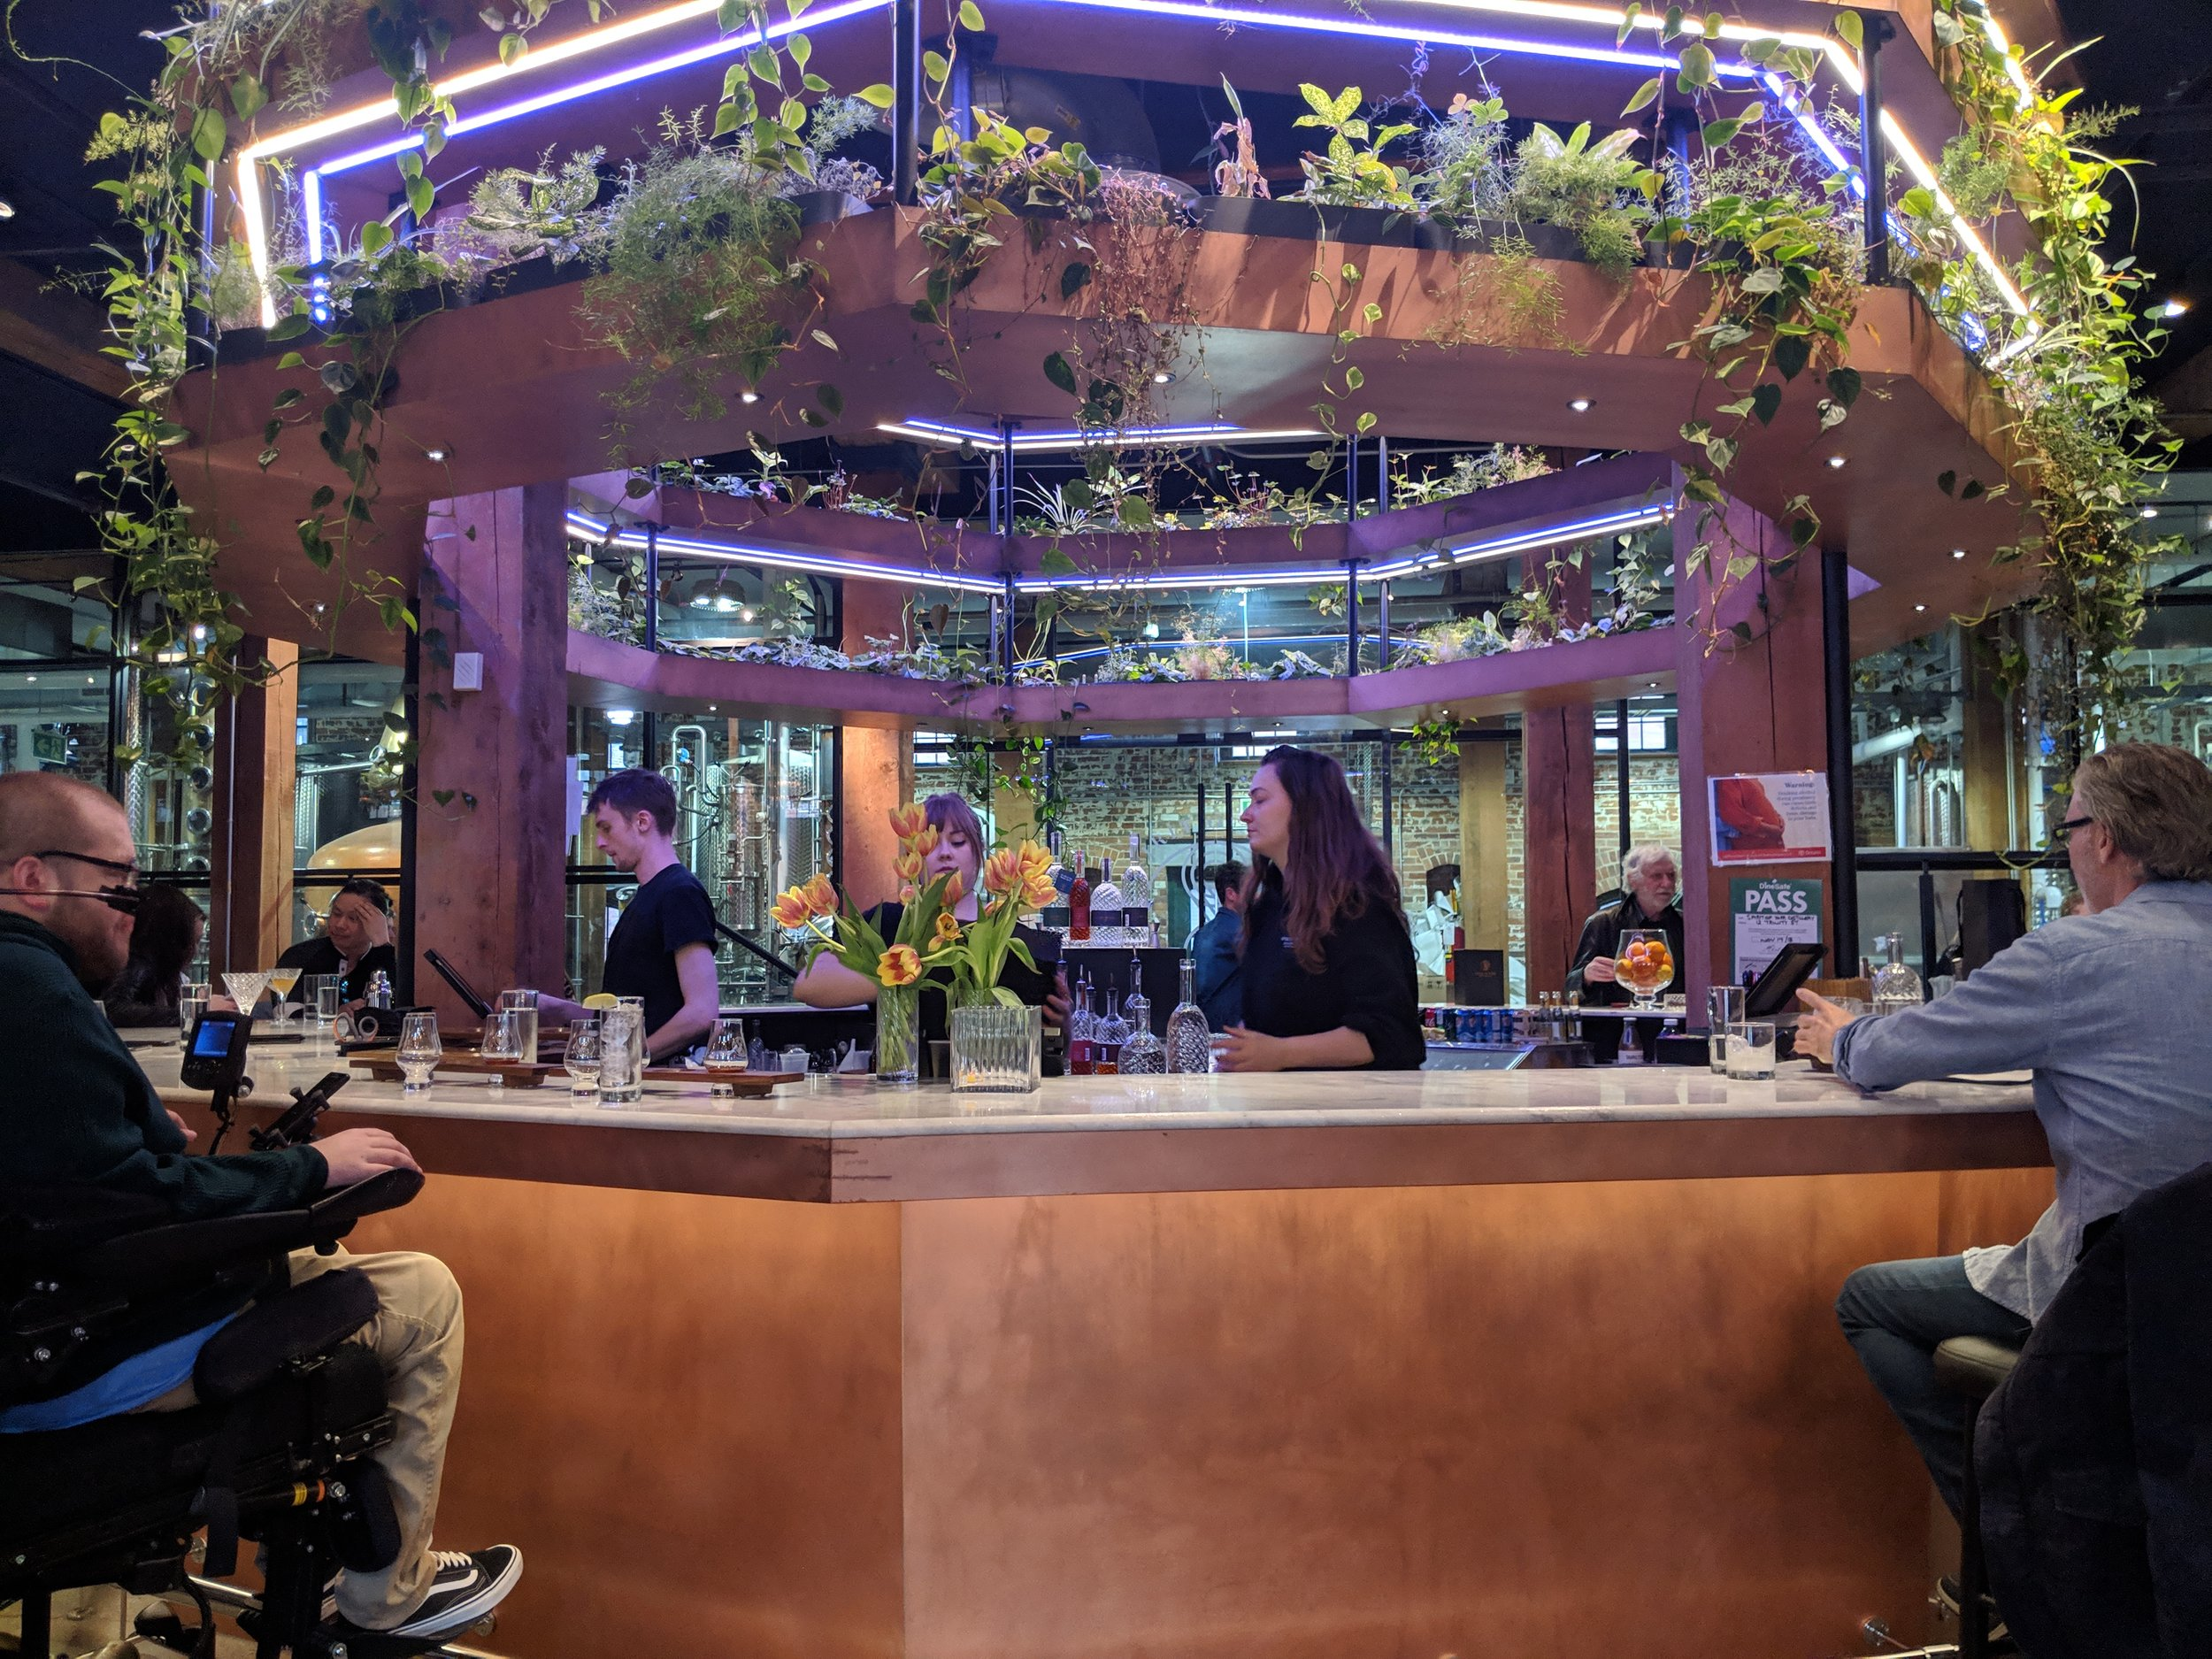 Picture of plants and lights over bar at the Spirit of York